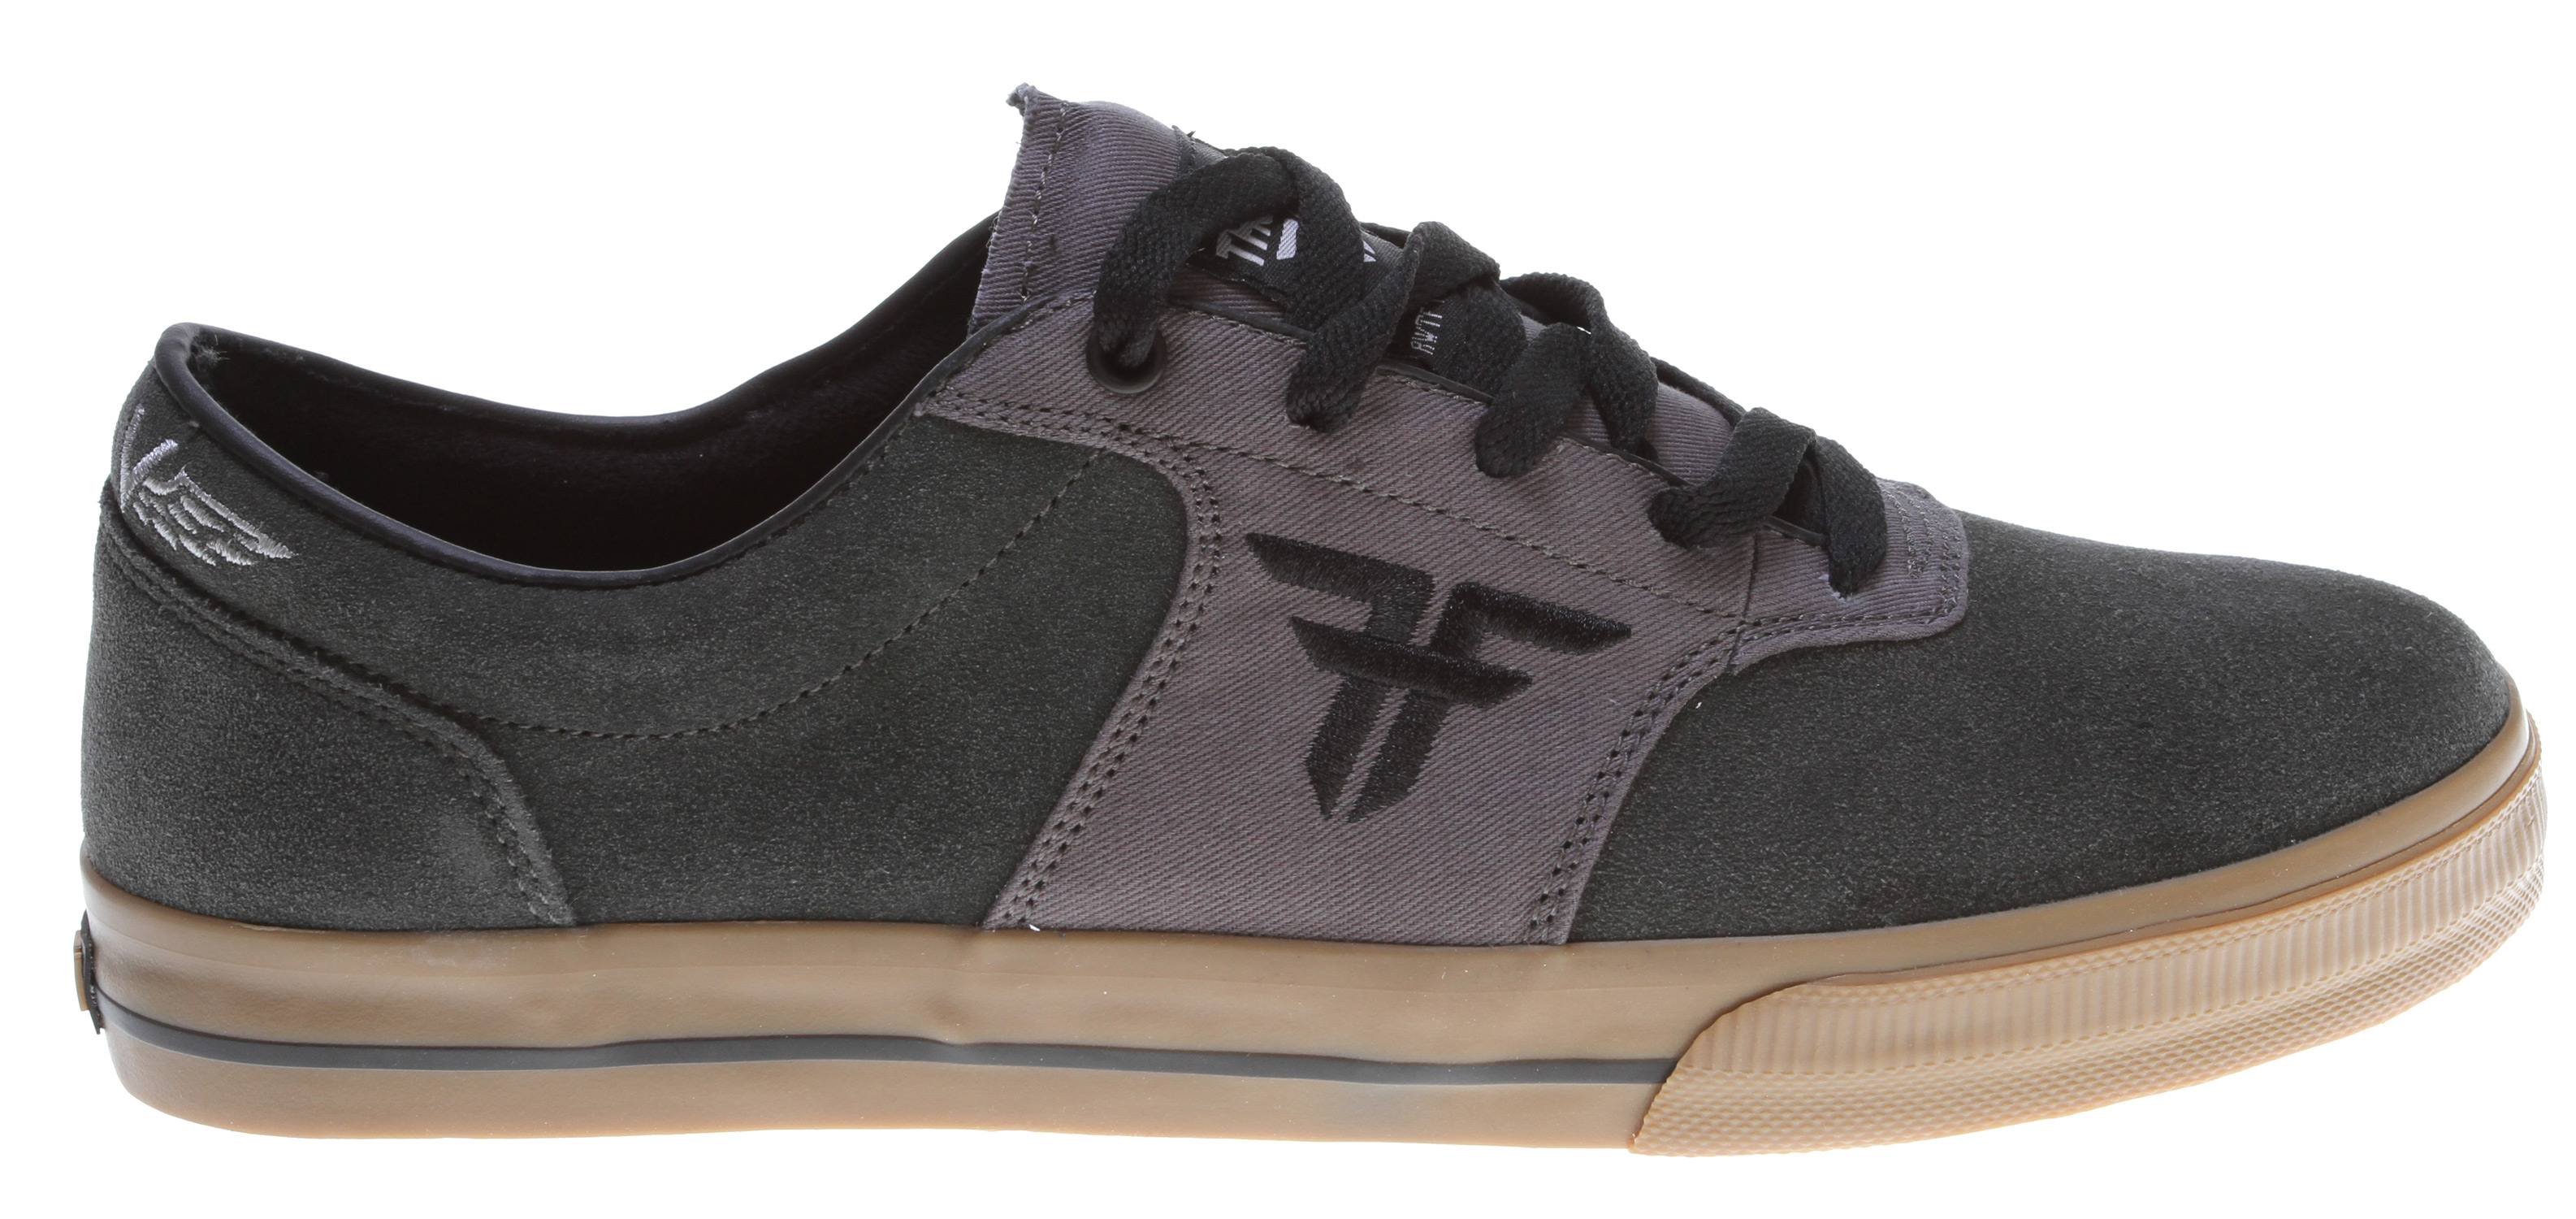 Skateboard The Fallen Victory is the slimmest silhouette of all the Thomas signature models. With unique yet simplistic lines, this shoe is an instant classic.Key Features of the Fallen Victory Skate Shoes: Genuine heavy duty suede and/or canvas upper Select models features premium materials Slim profile w/ non-padded tongue & minimally padded collar for comfort and support Vulcanized sole construction EVA insole to absorb impact and provide cushioning - $59.95